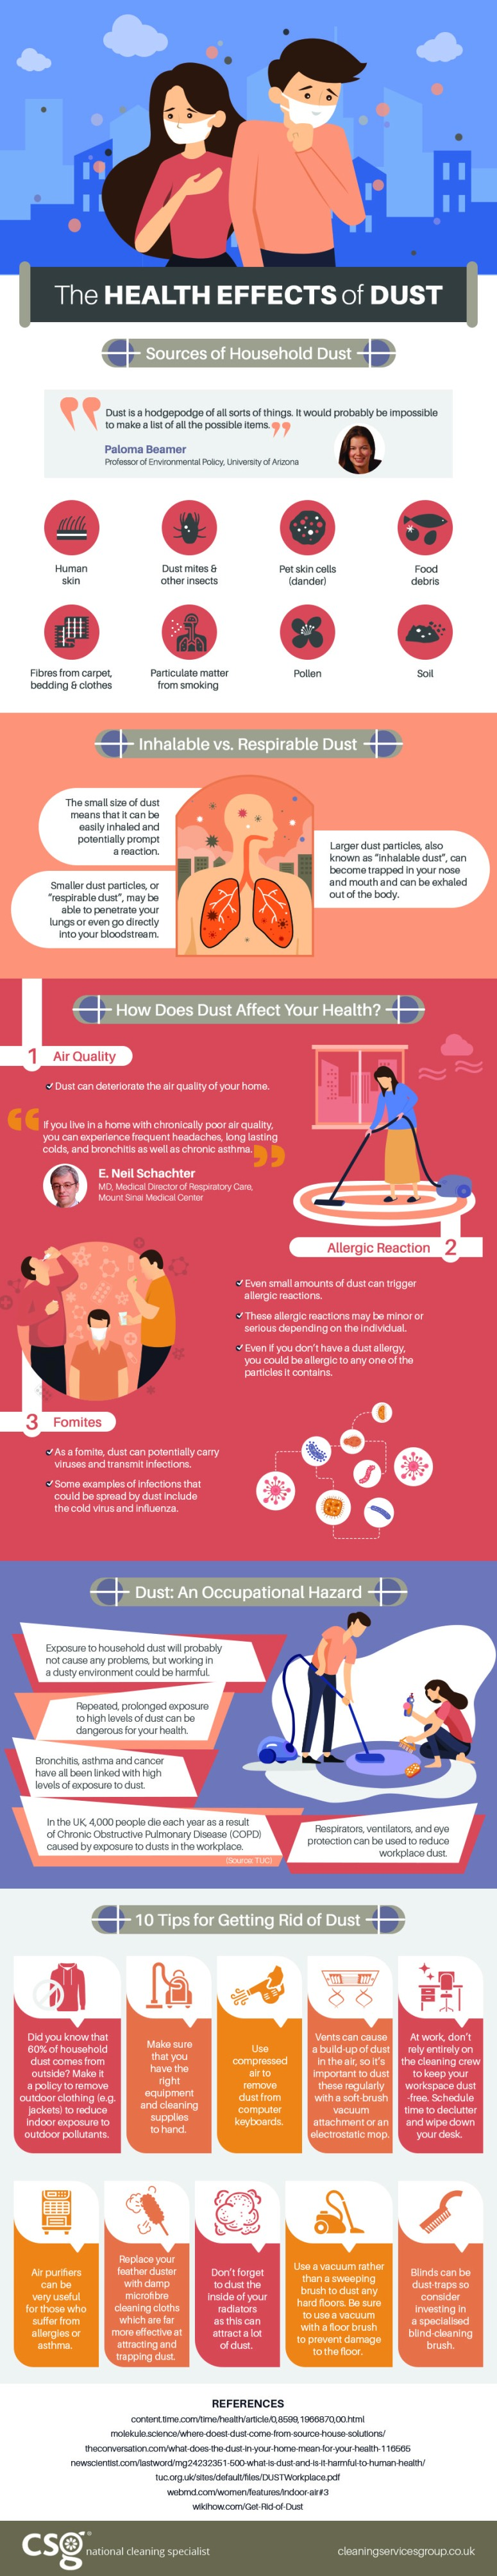 The Health Effects of Dust - Infographic